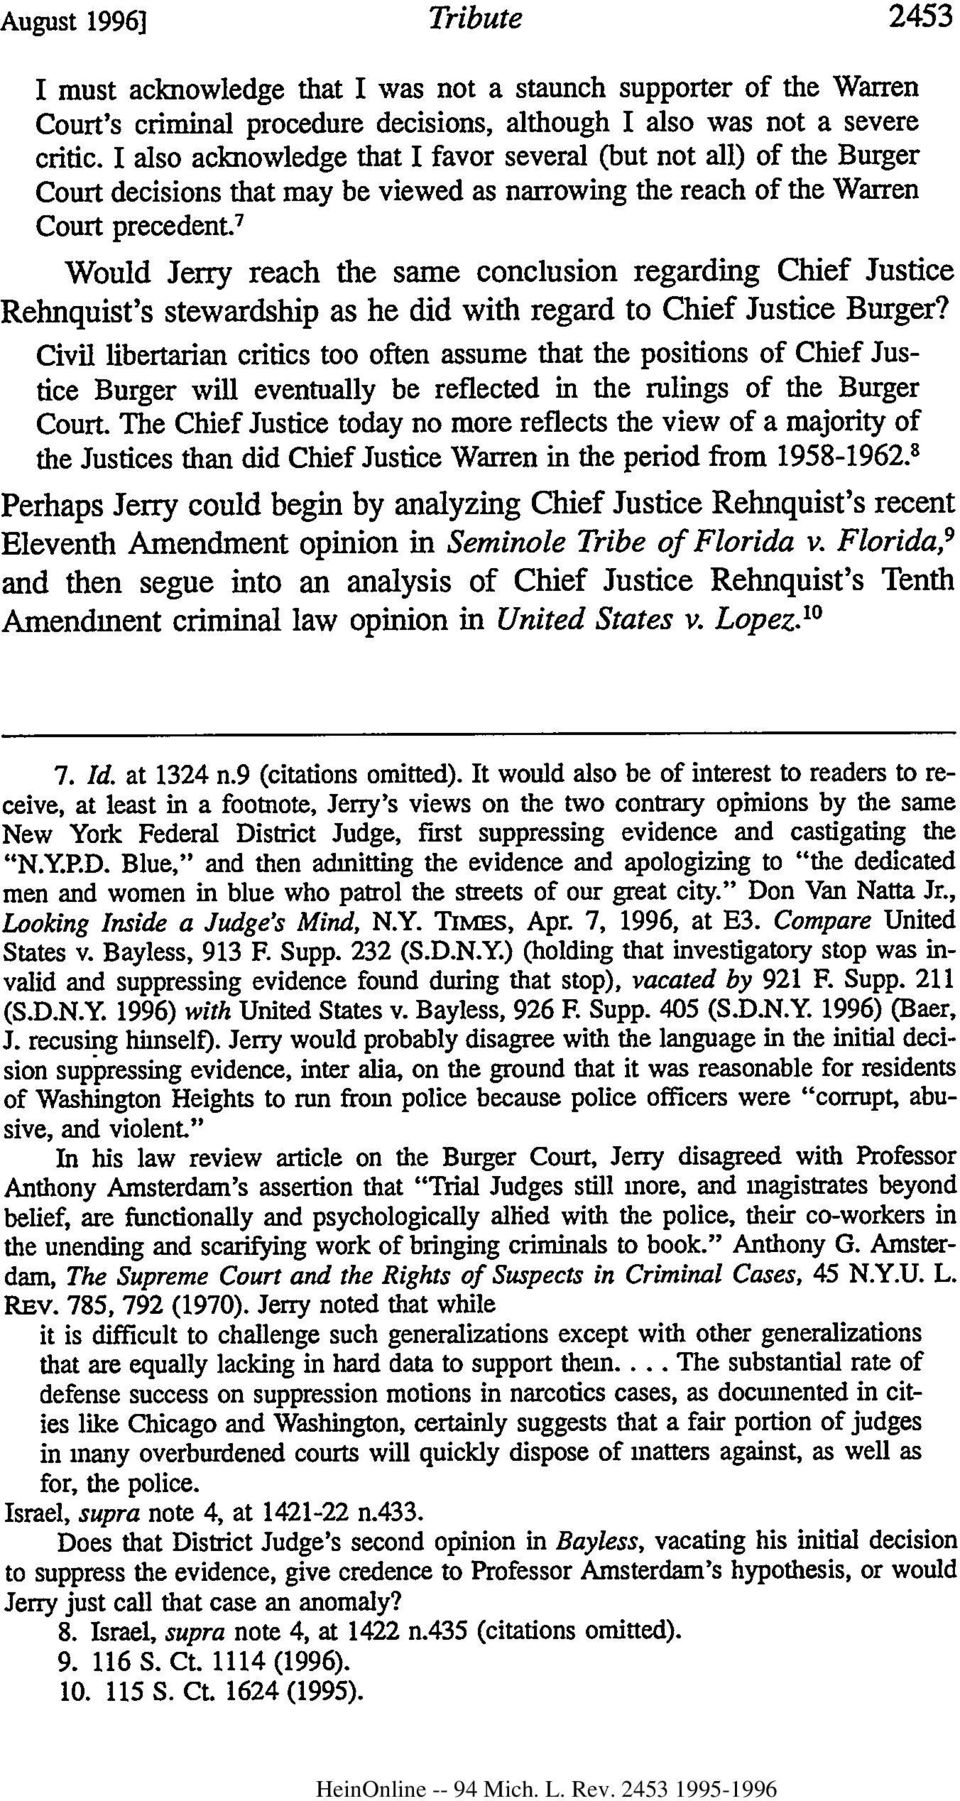 7 Would Jerry reach the same conclusion regarding Chief Justice Rehnquist's stewardship as he did with regard to Chief Justice Burger?